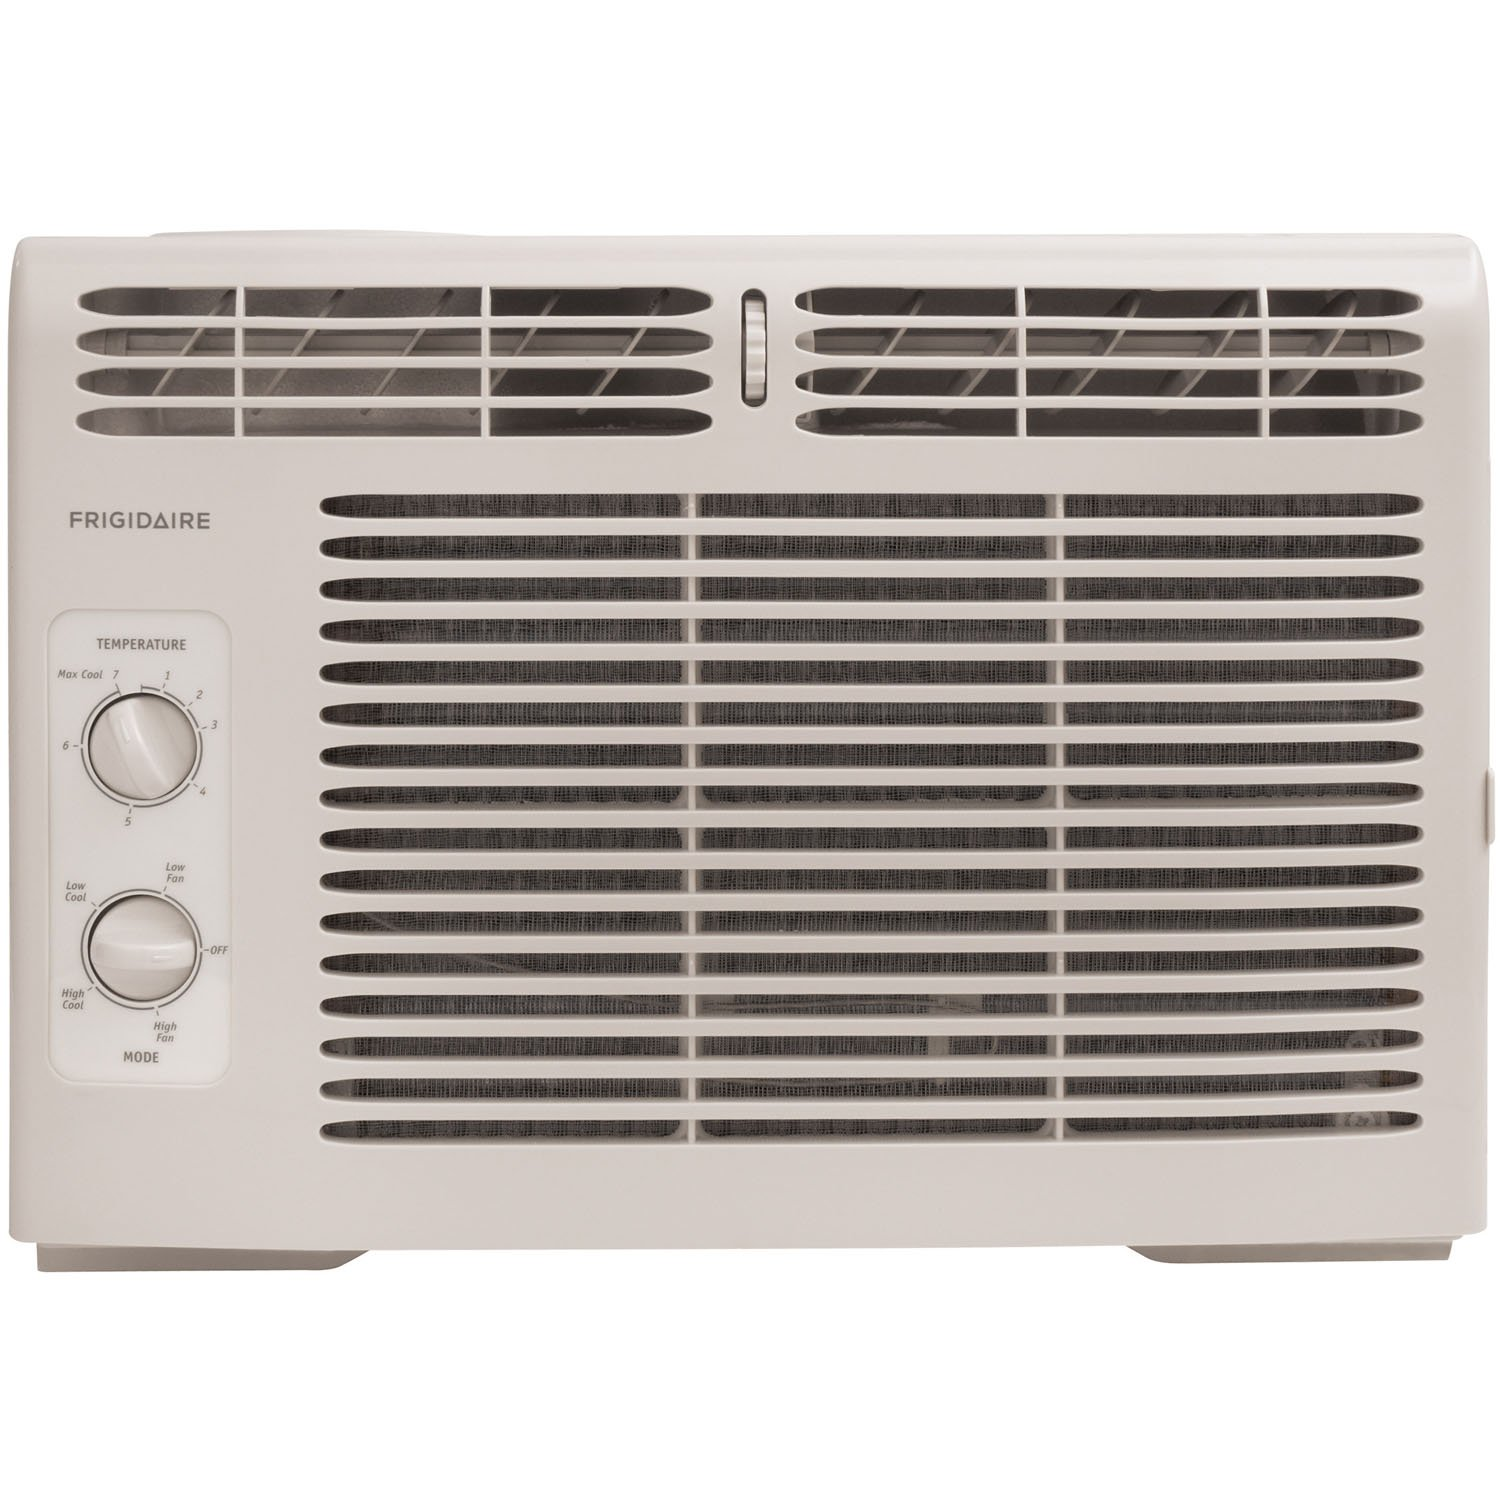 Amazon com  Frigidaire FRA052XT7 5 000 BTU Mini Window Air Conditioner   Home   Kitchen. Amazon com  Frigidaire FRA052XT7 5 000 BTU Mini Window Air